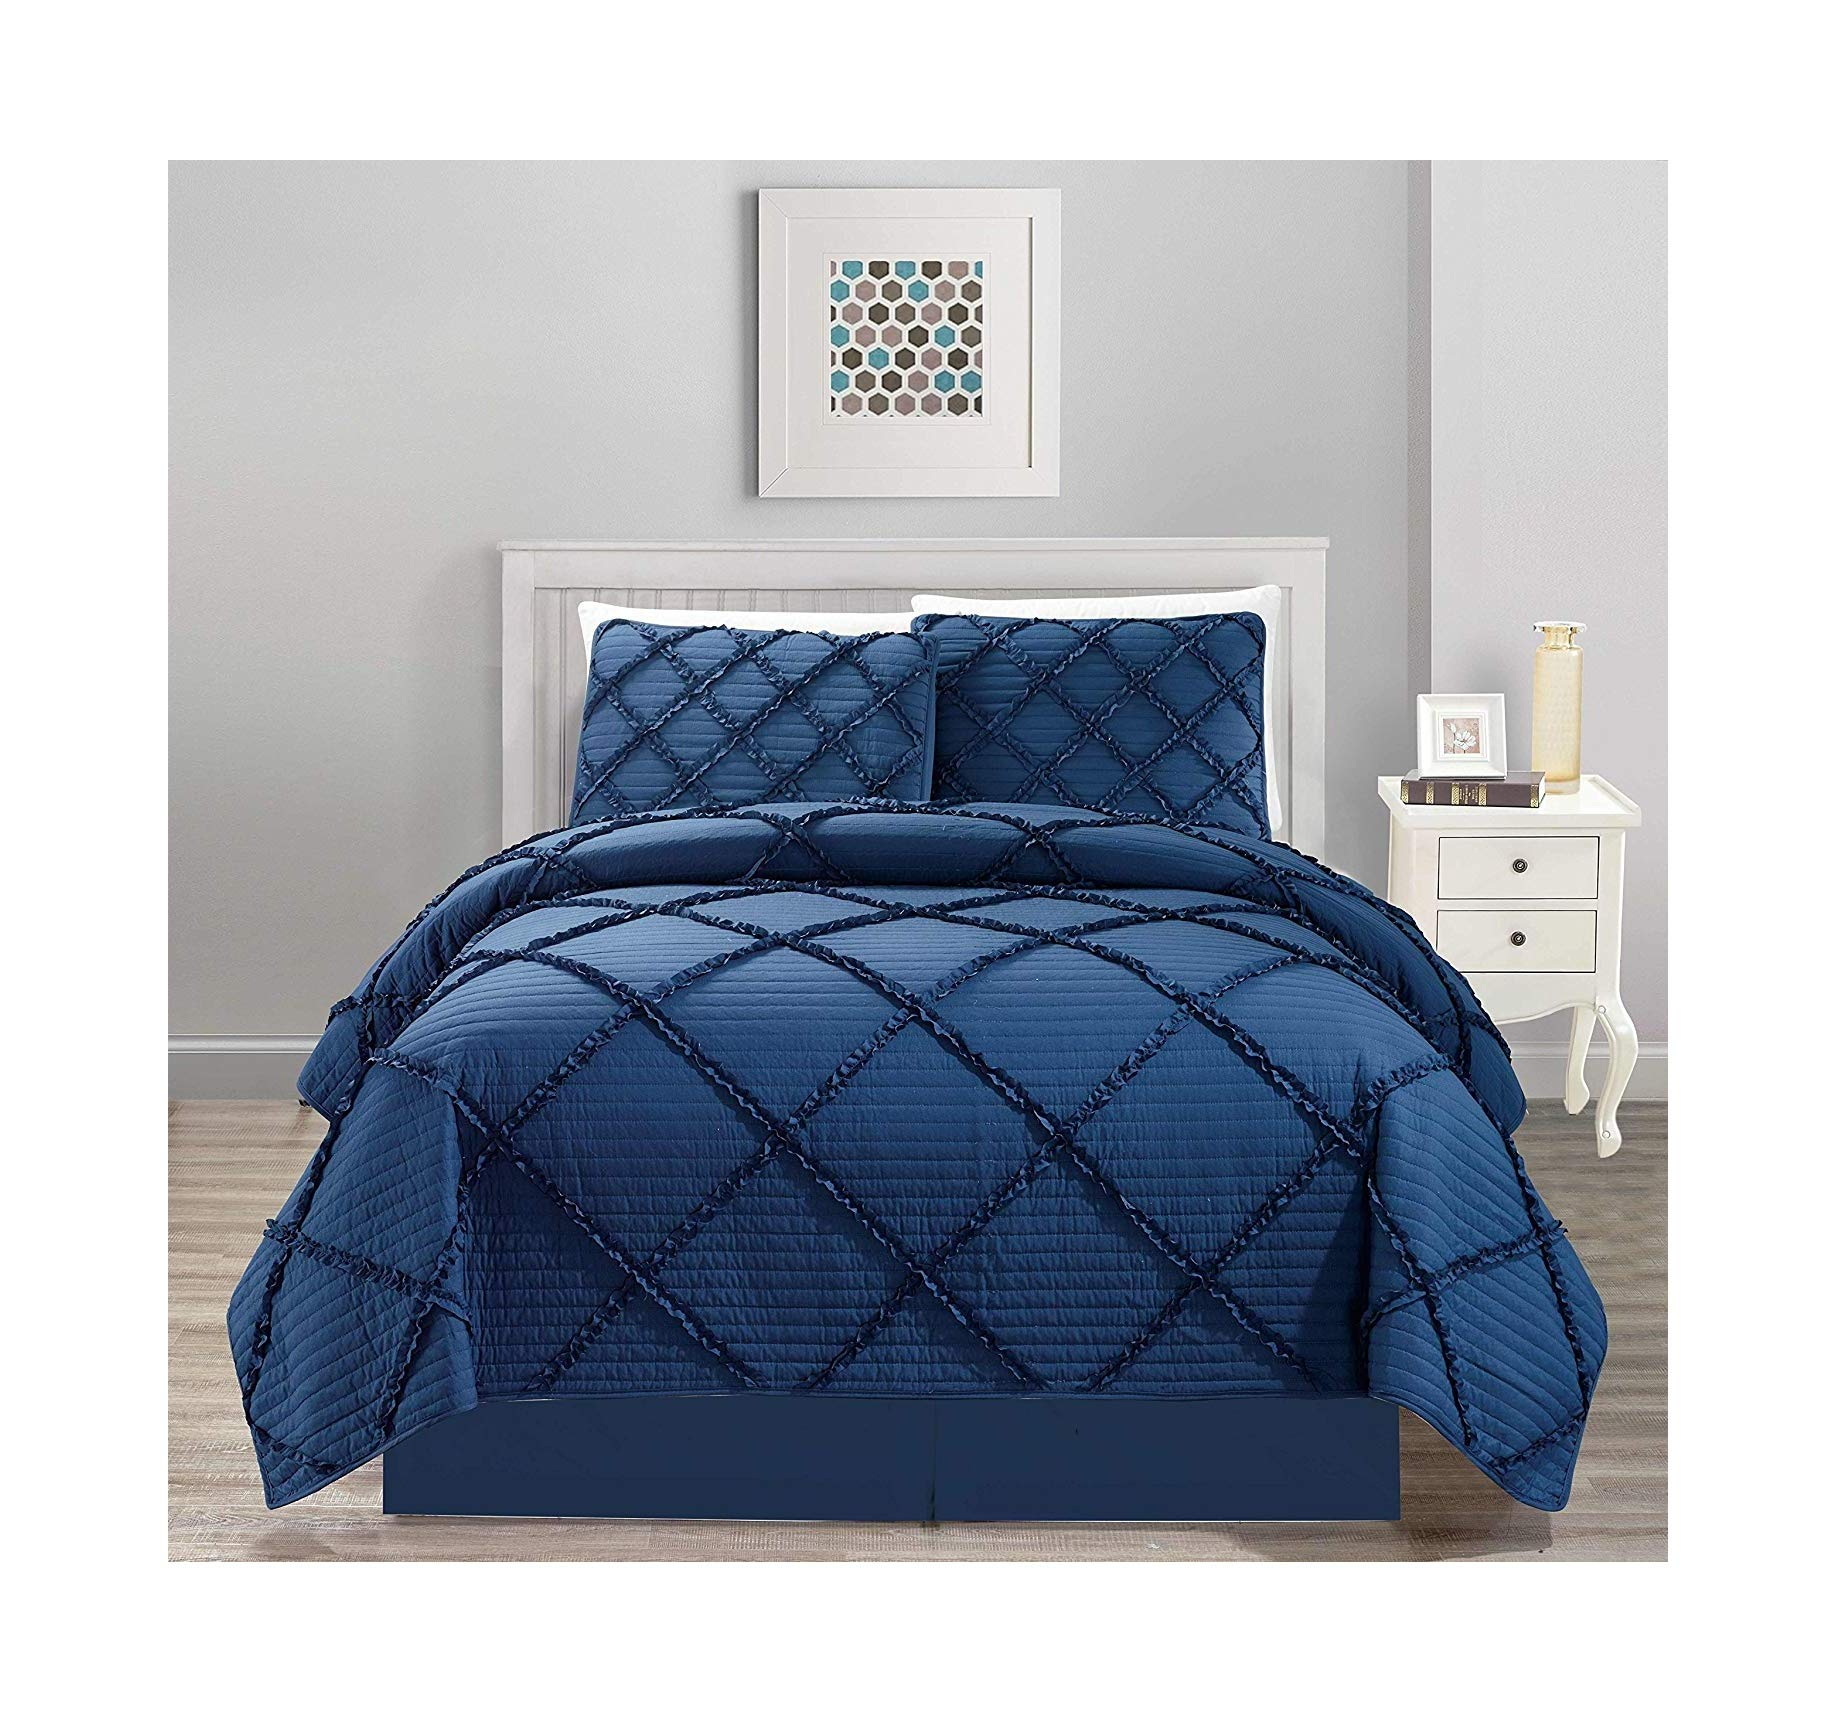 All American Collection New 4pc Diamond Pleated Ruffle Bedspread/Quilt Set with Bedskirt (Queen Size, Navy)